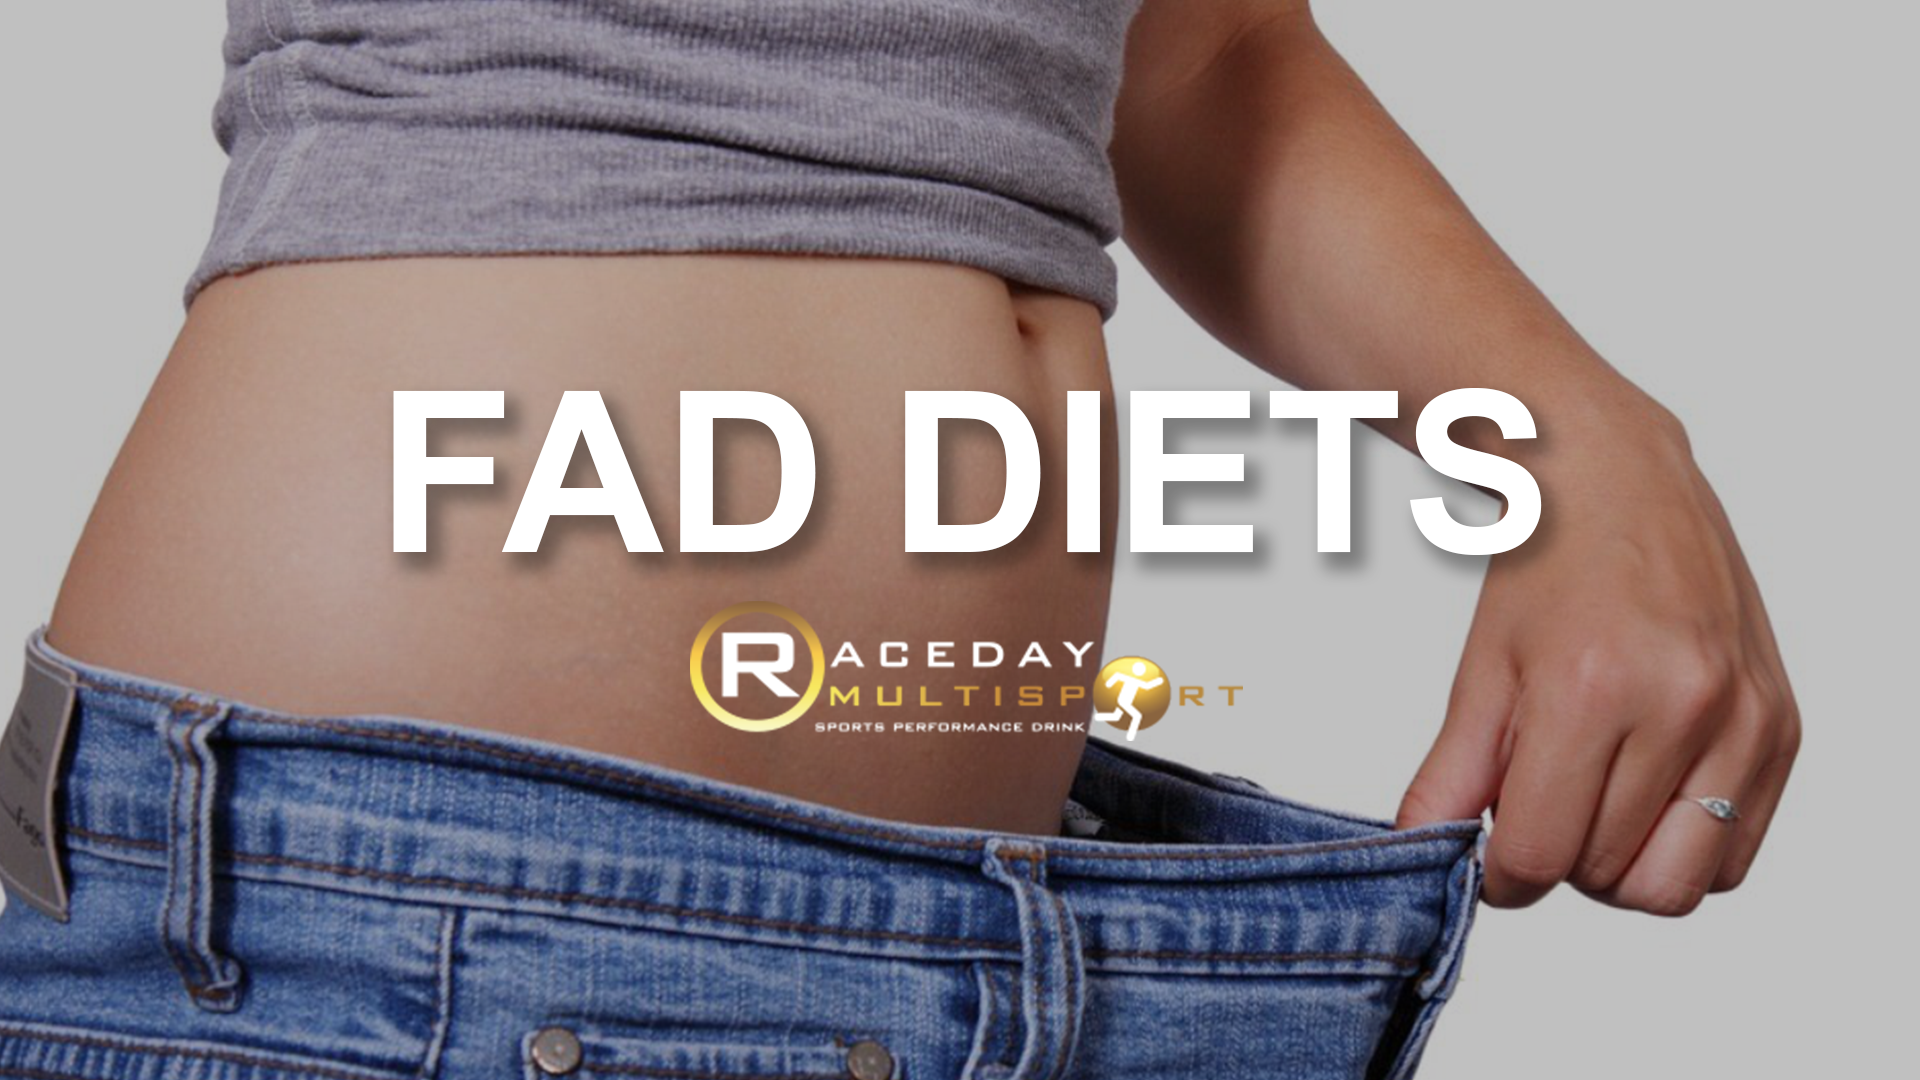 The main reason to avoid fad diets is because losing weight is easy but keeping it off is more challenging.